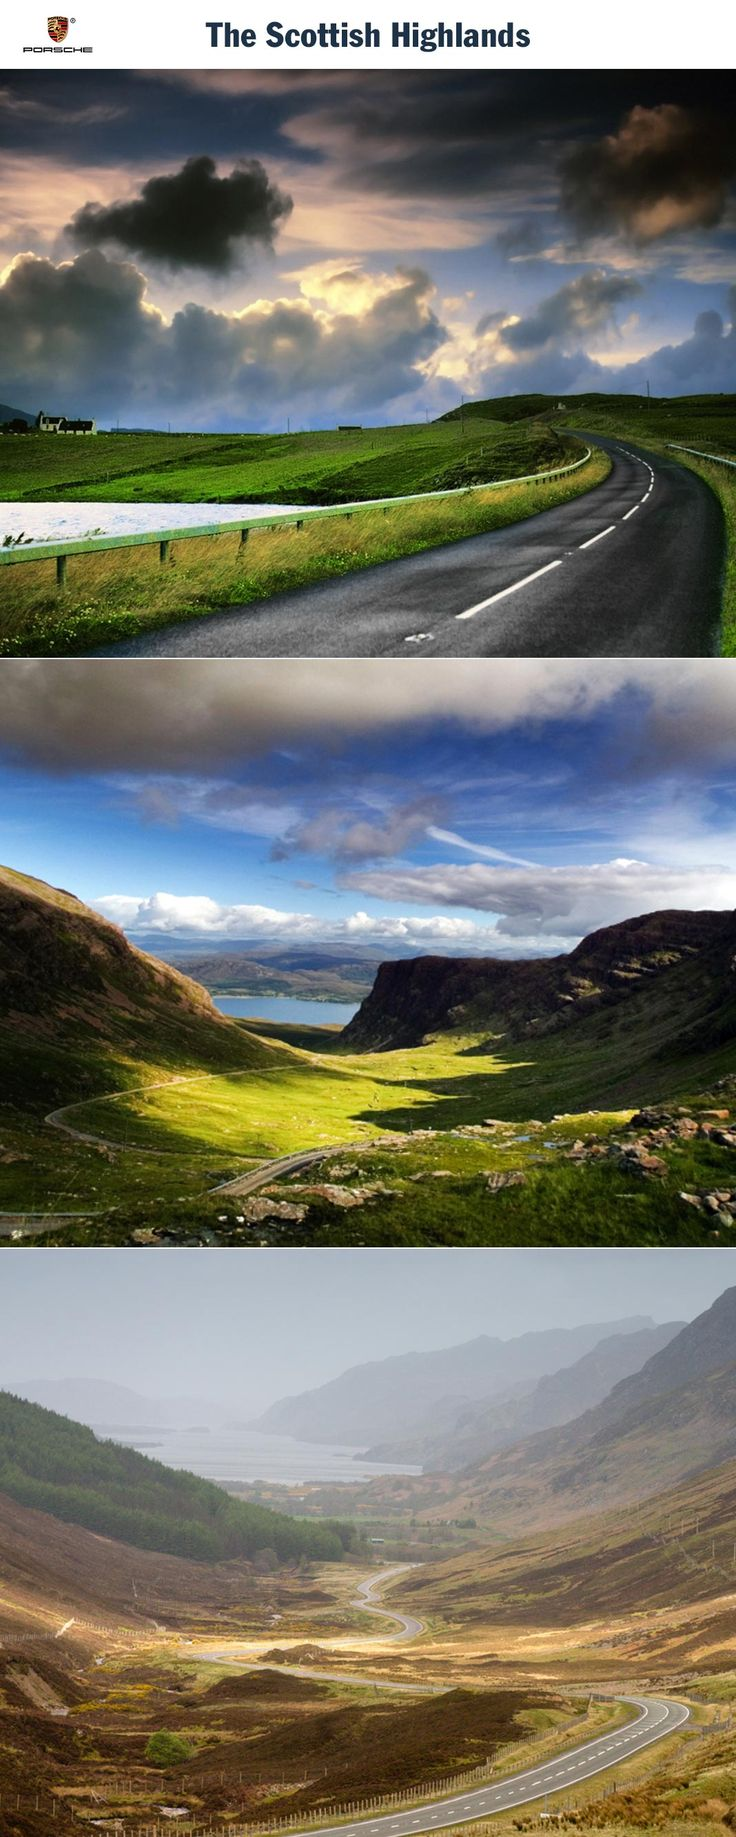 The Scottish Highlands. No scarcity of twists and turns: the steepest road in the Kingdom. Route: Inverness - Loch Garve - Inverness. Driving time: Approx. 6 hours. Distance: Approx. 364 km (226 miles). Recommended travel time: Start of April - Start of November.   Learn more: http://link.porsche.com/gts/scottland